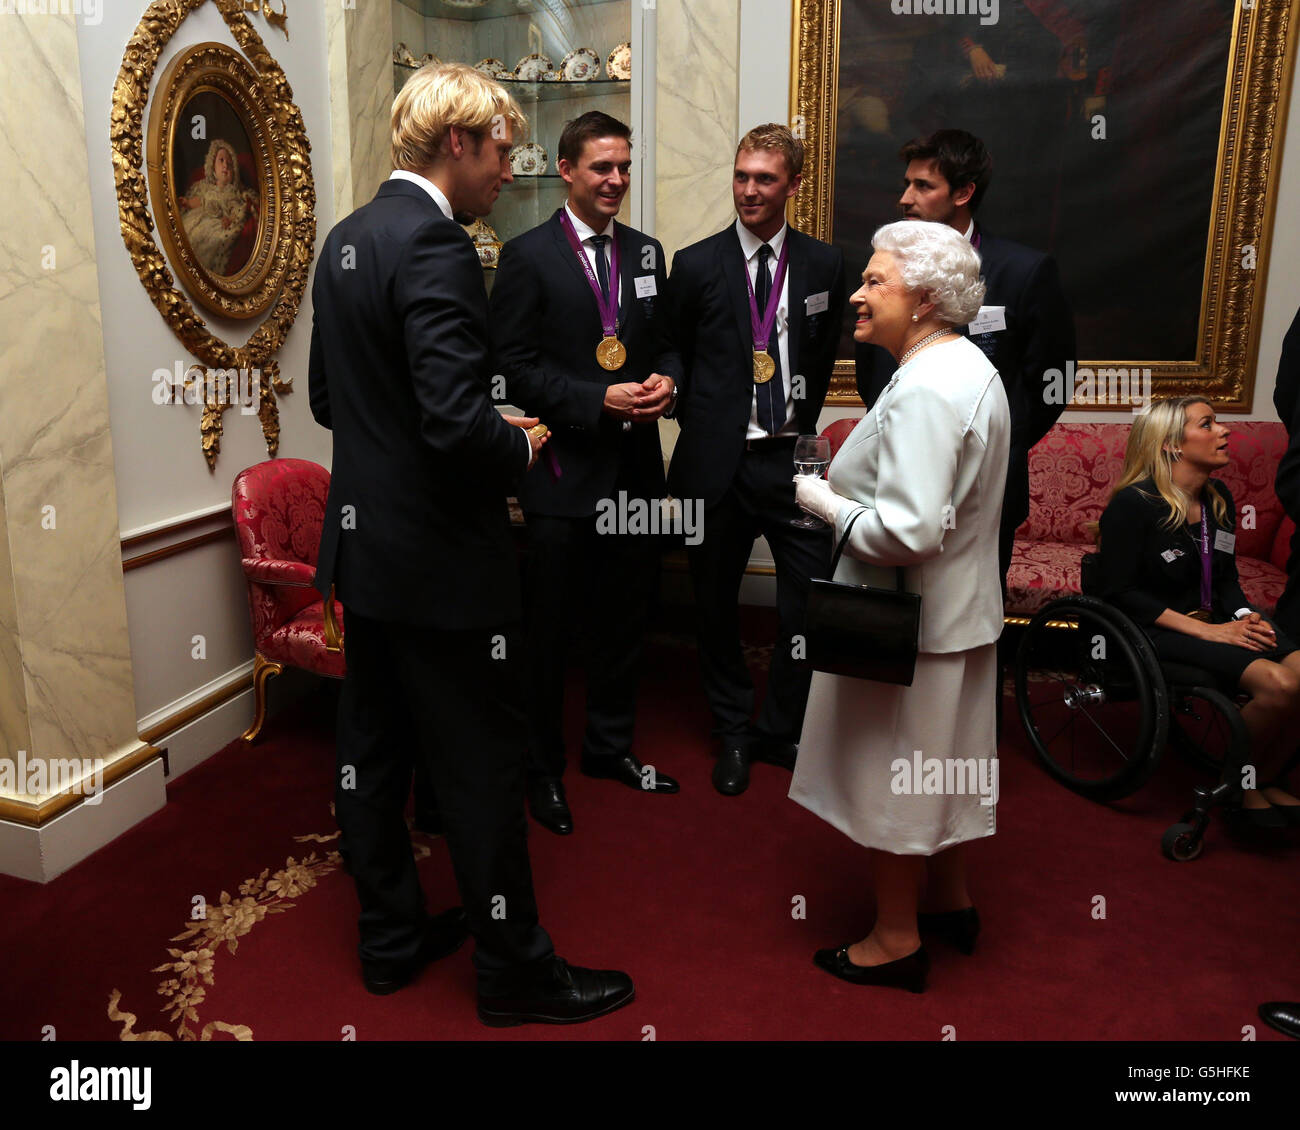 Royal reception for Team GB Medallists - Stock Image